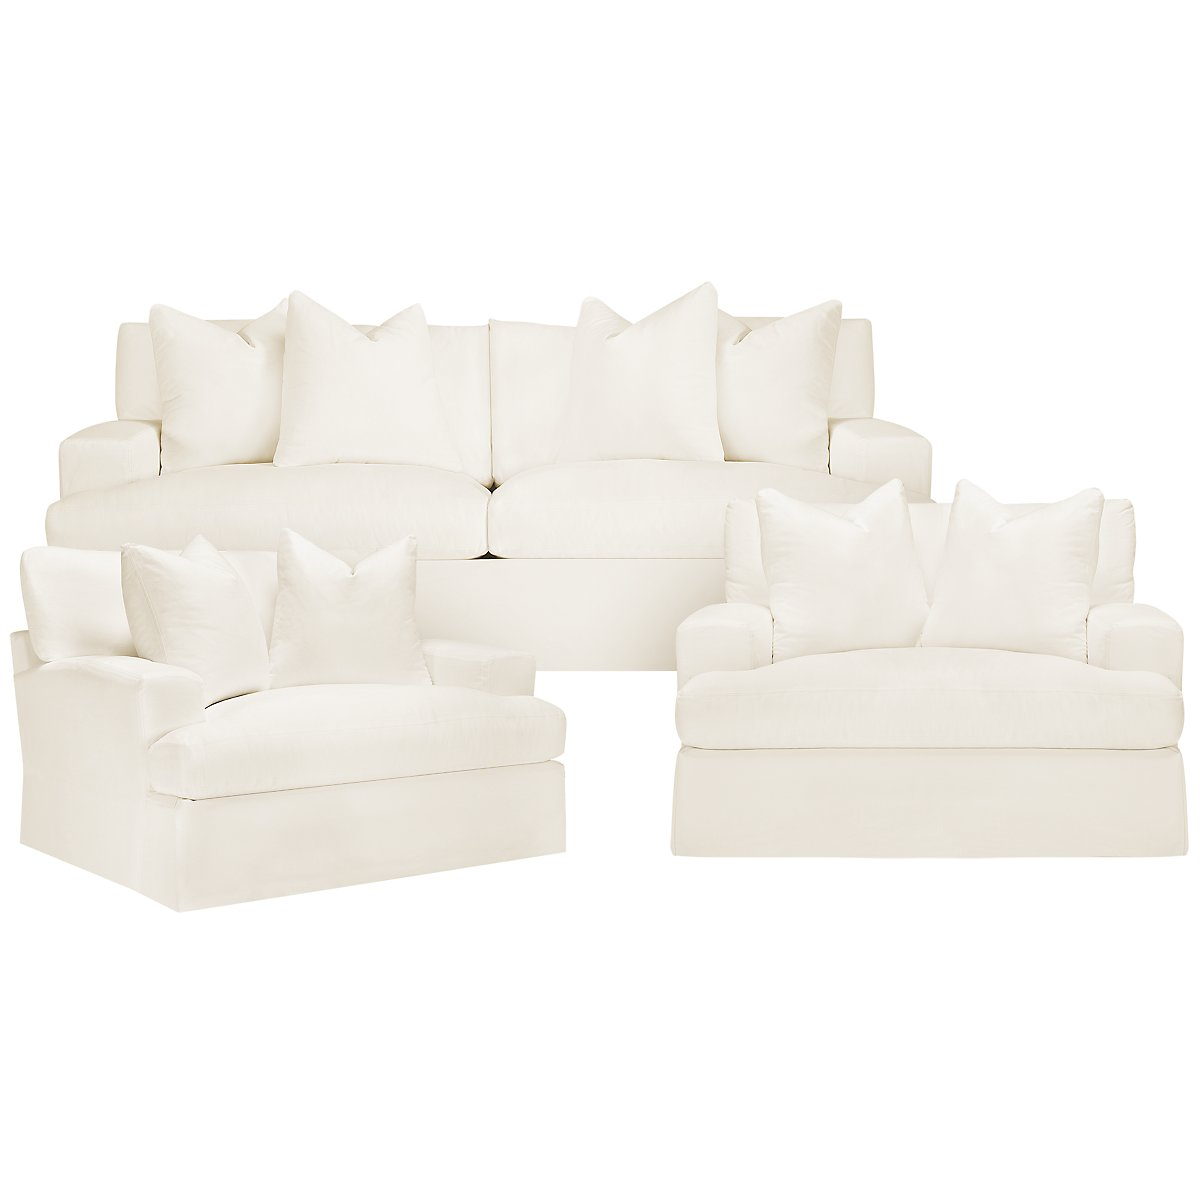 City Furniture Delilah White Fabric Sofa